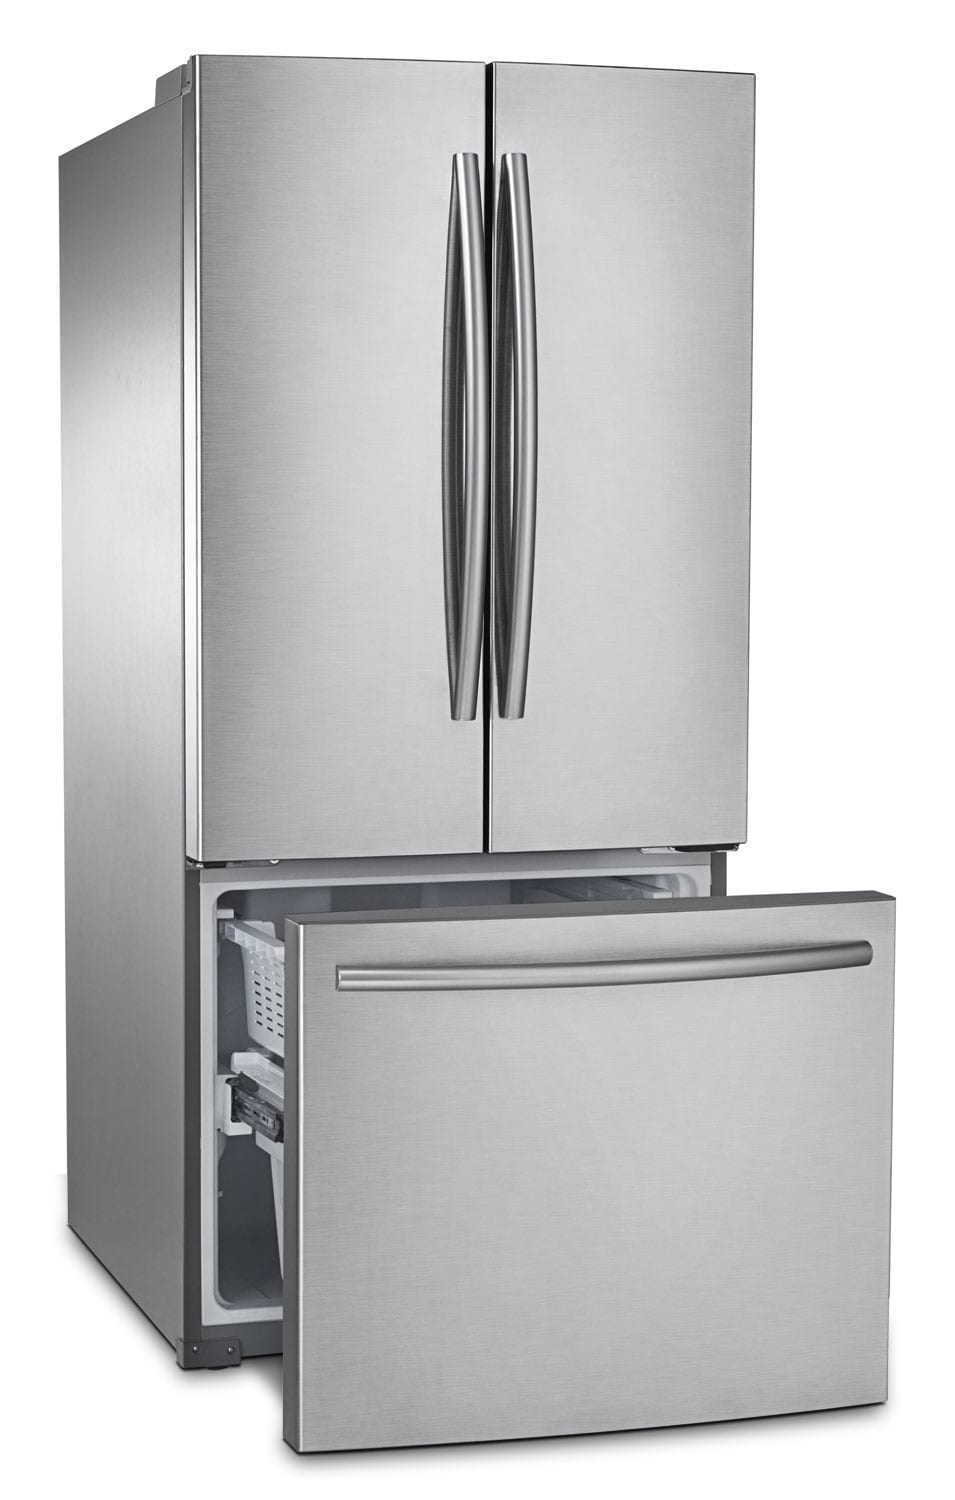 Samsung Stainless Steel French Door Refrigerator 216 Cu